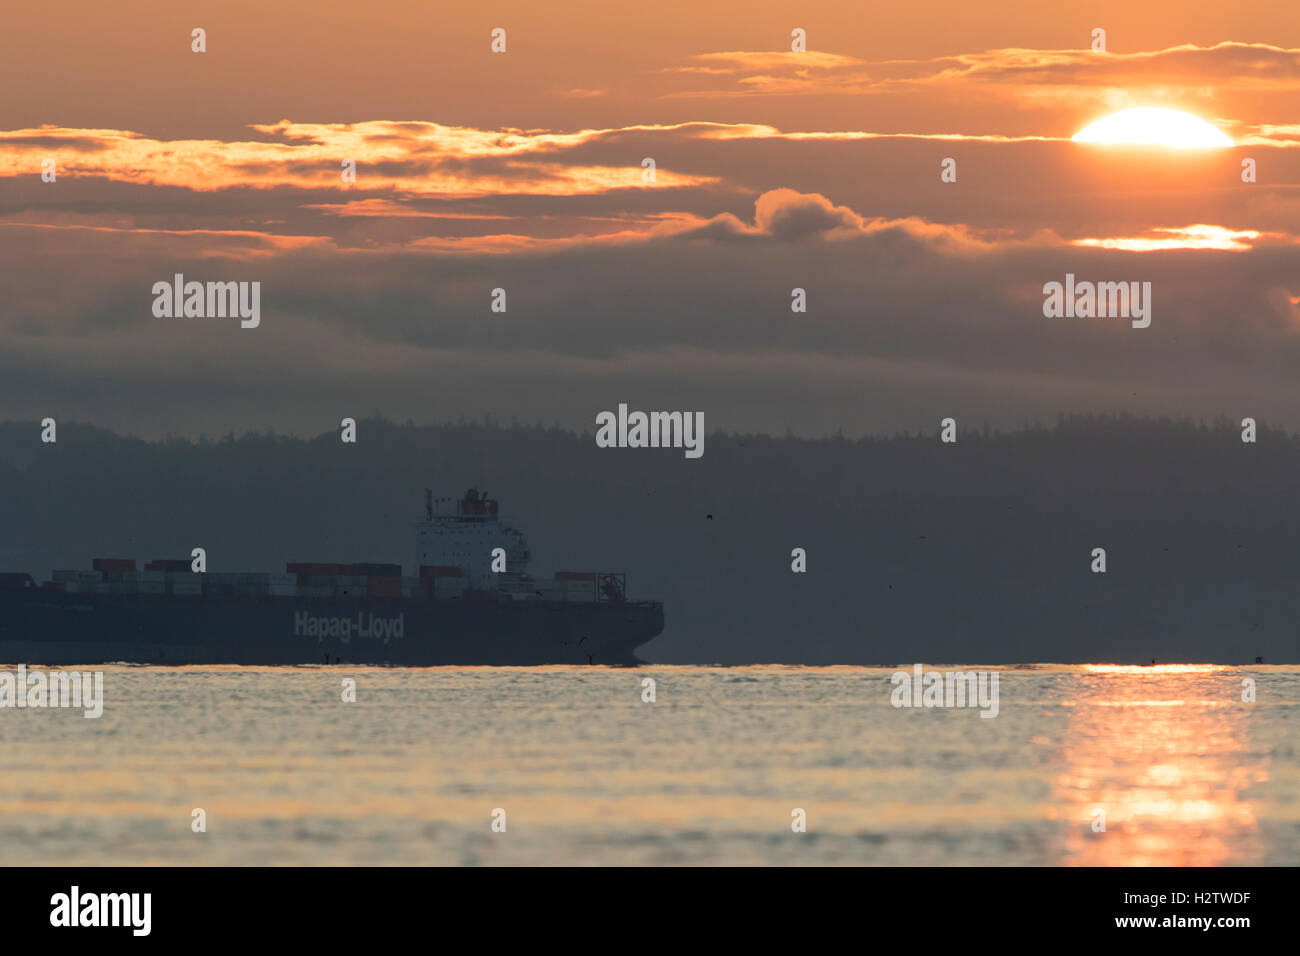 Puget Sound a sunrise con nave portacontainer. Immagini Stock